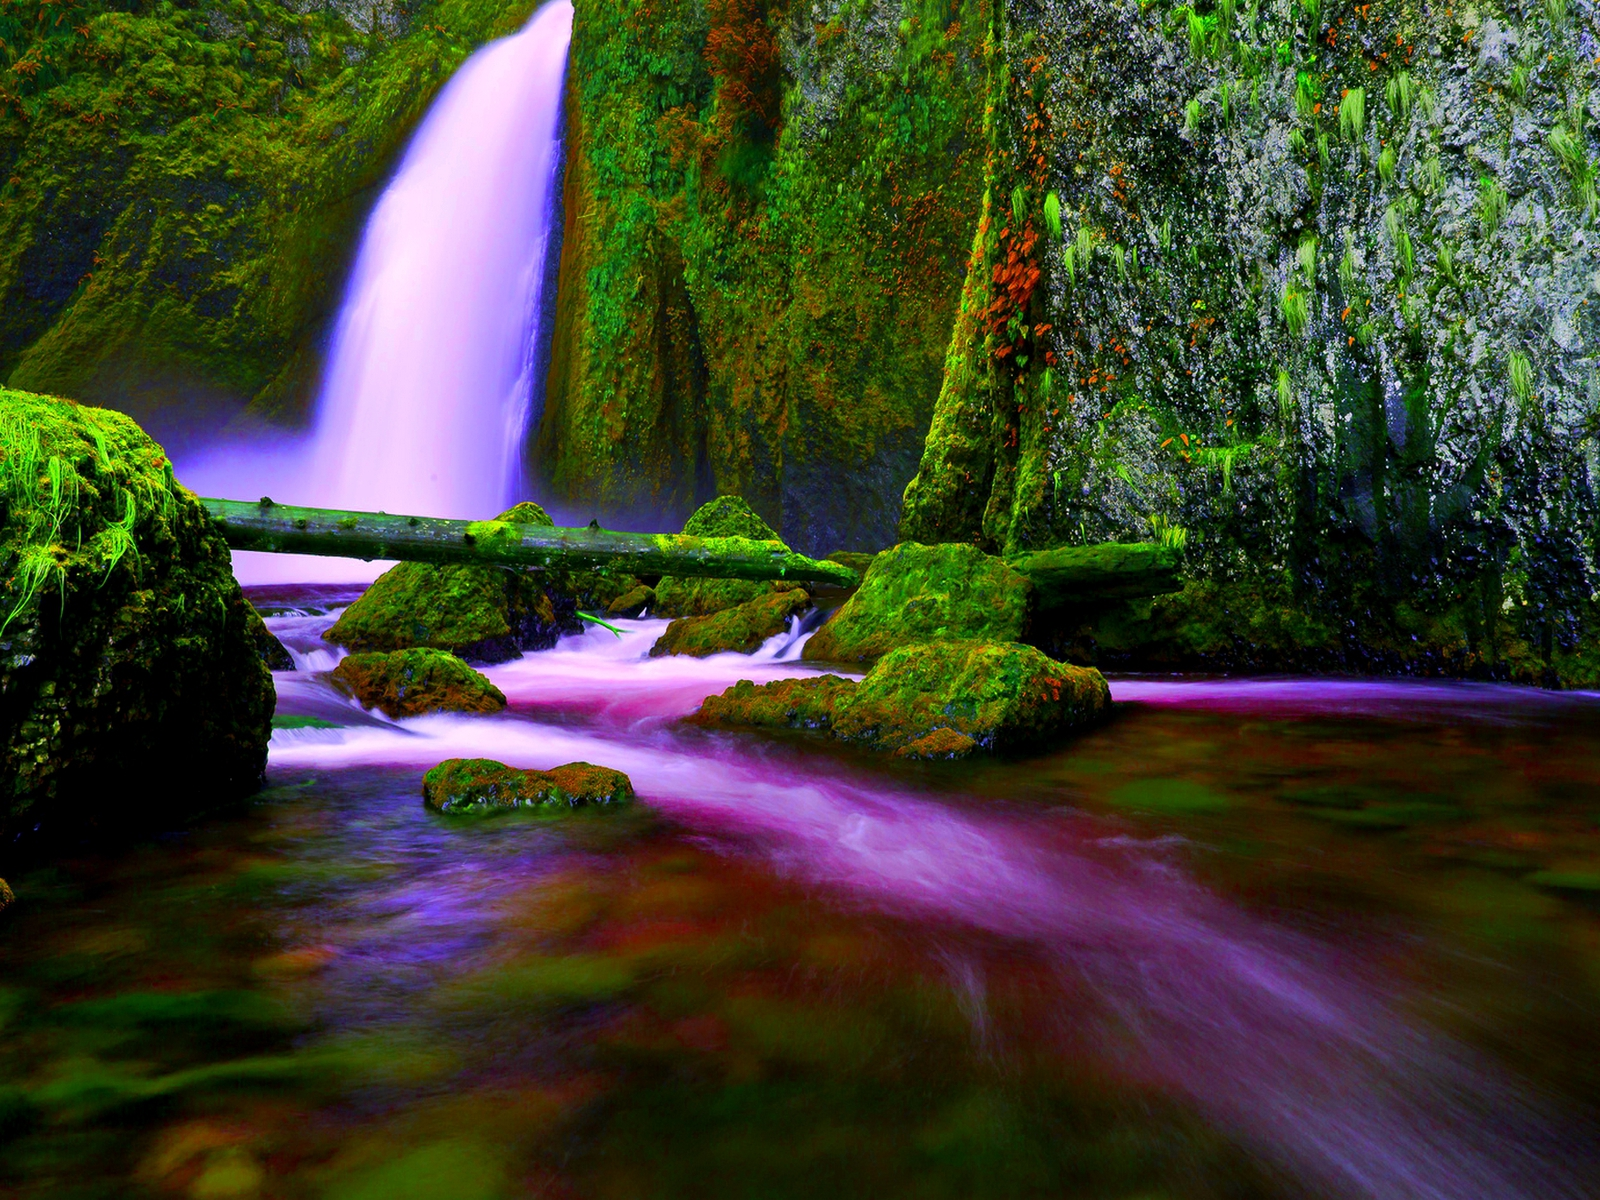 Waterfall computer wallpapers desktop backgrounds - Desktop wallpaper 1600x1200 ...